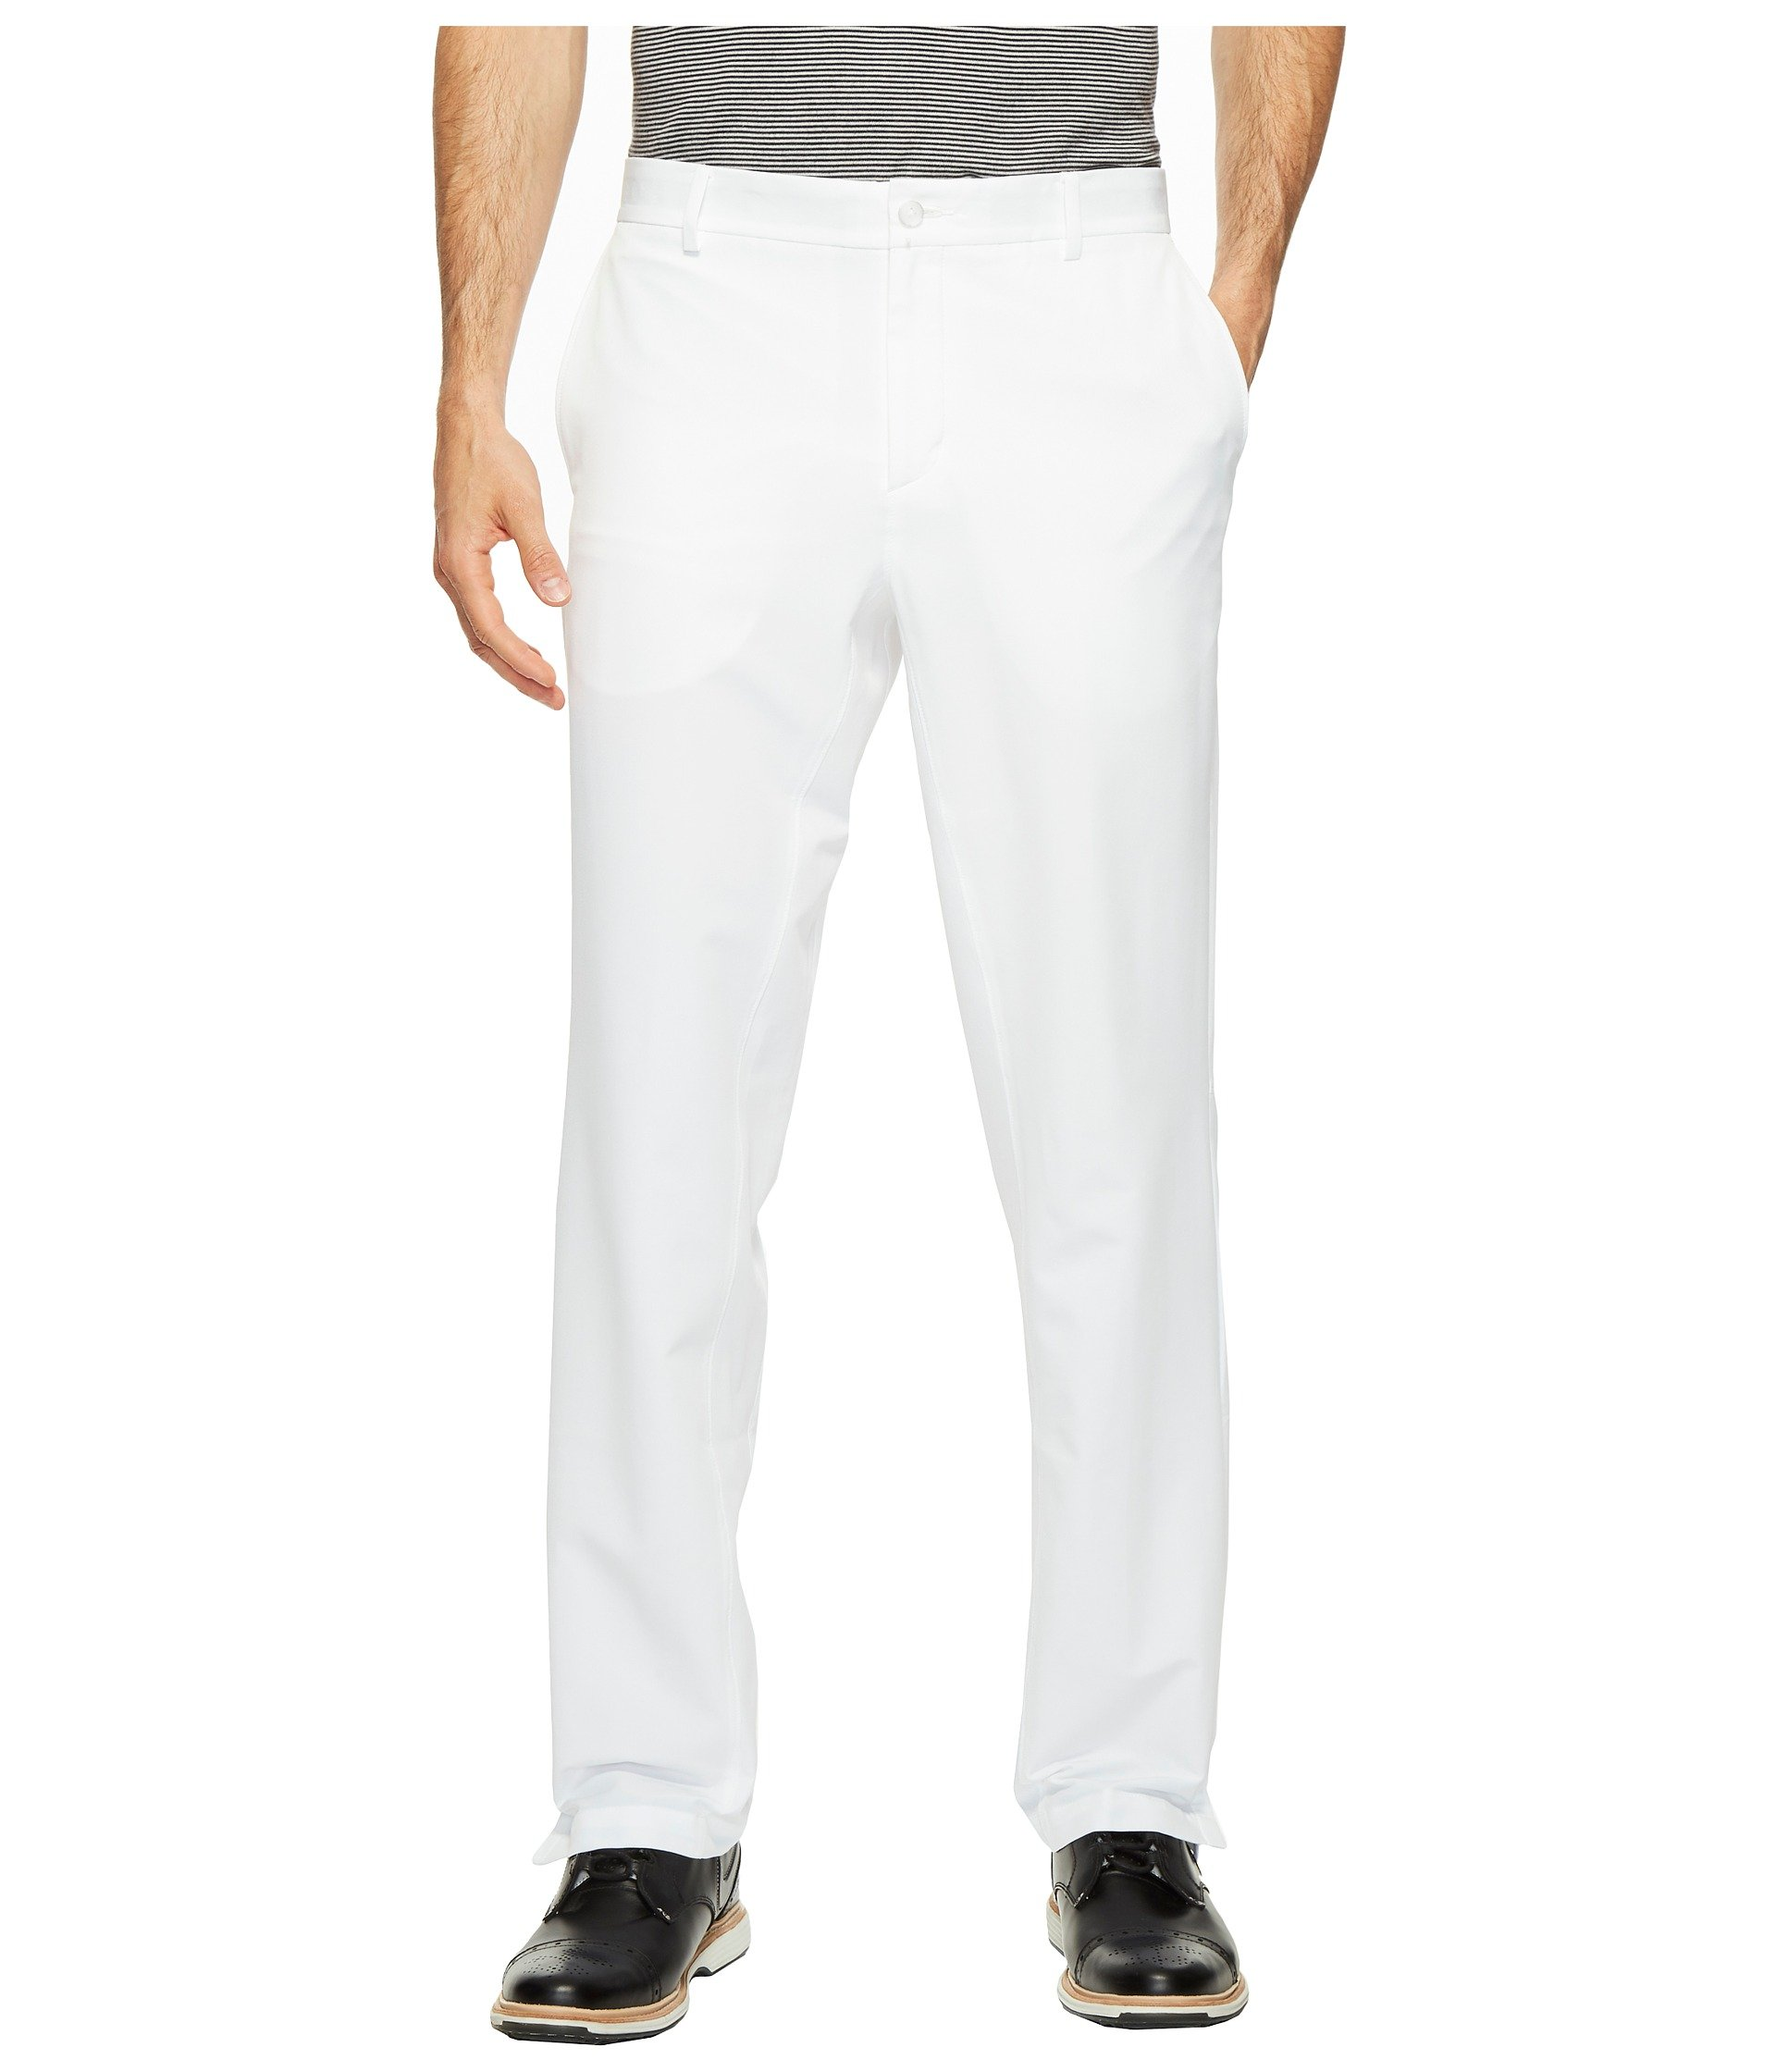 NIKE Men's Flex Hybrid Golf Pants, White/White, Size 34/32 by Nike